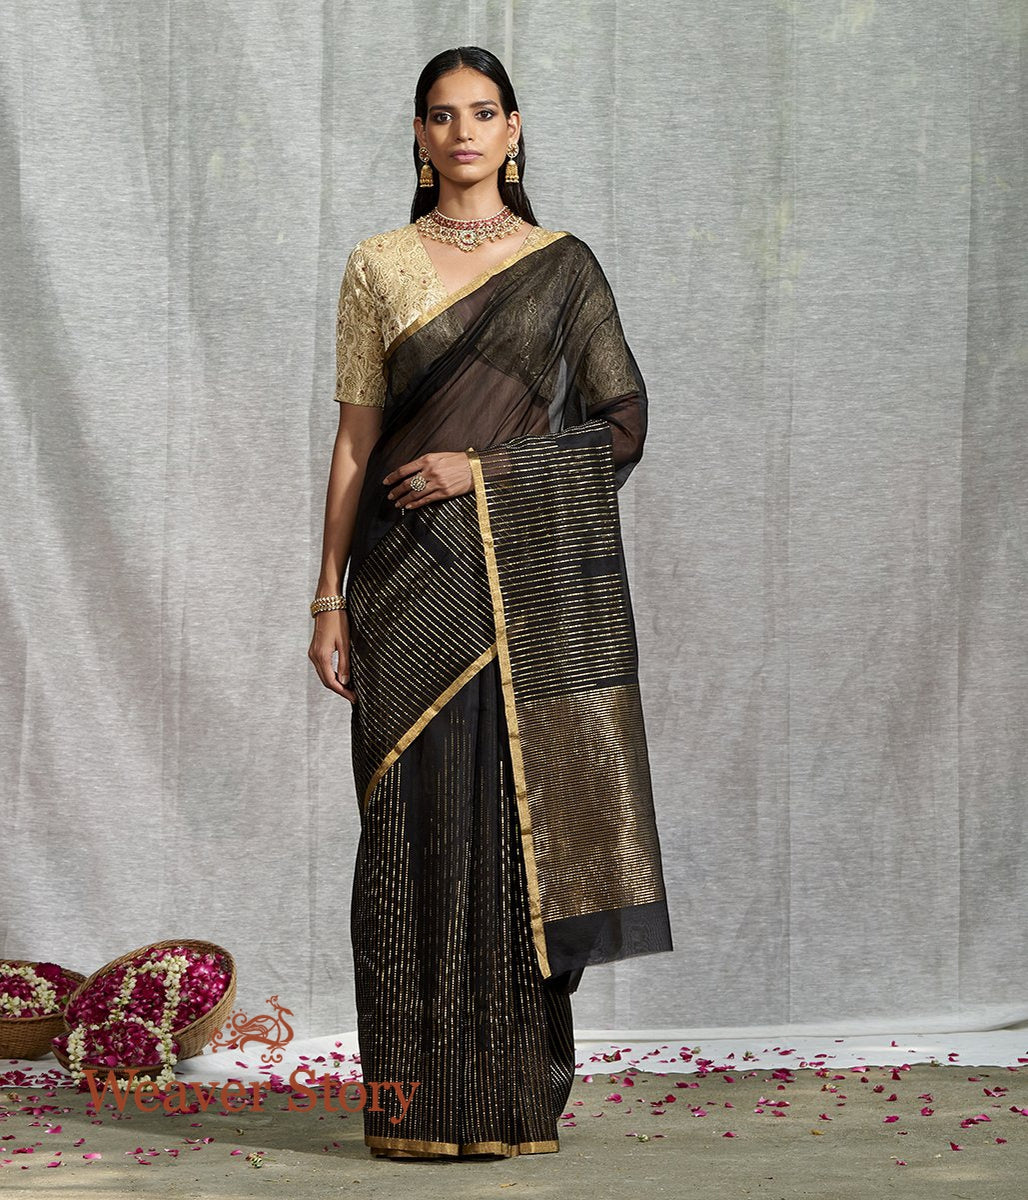 Handwoven Black Merecrised Cotton Silk Saree with Zari Stripes